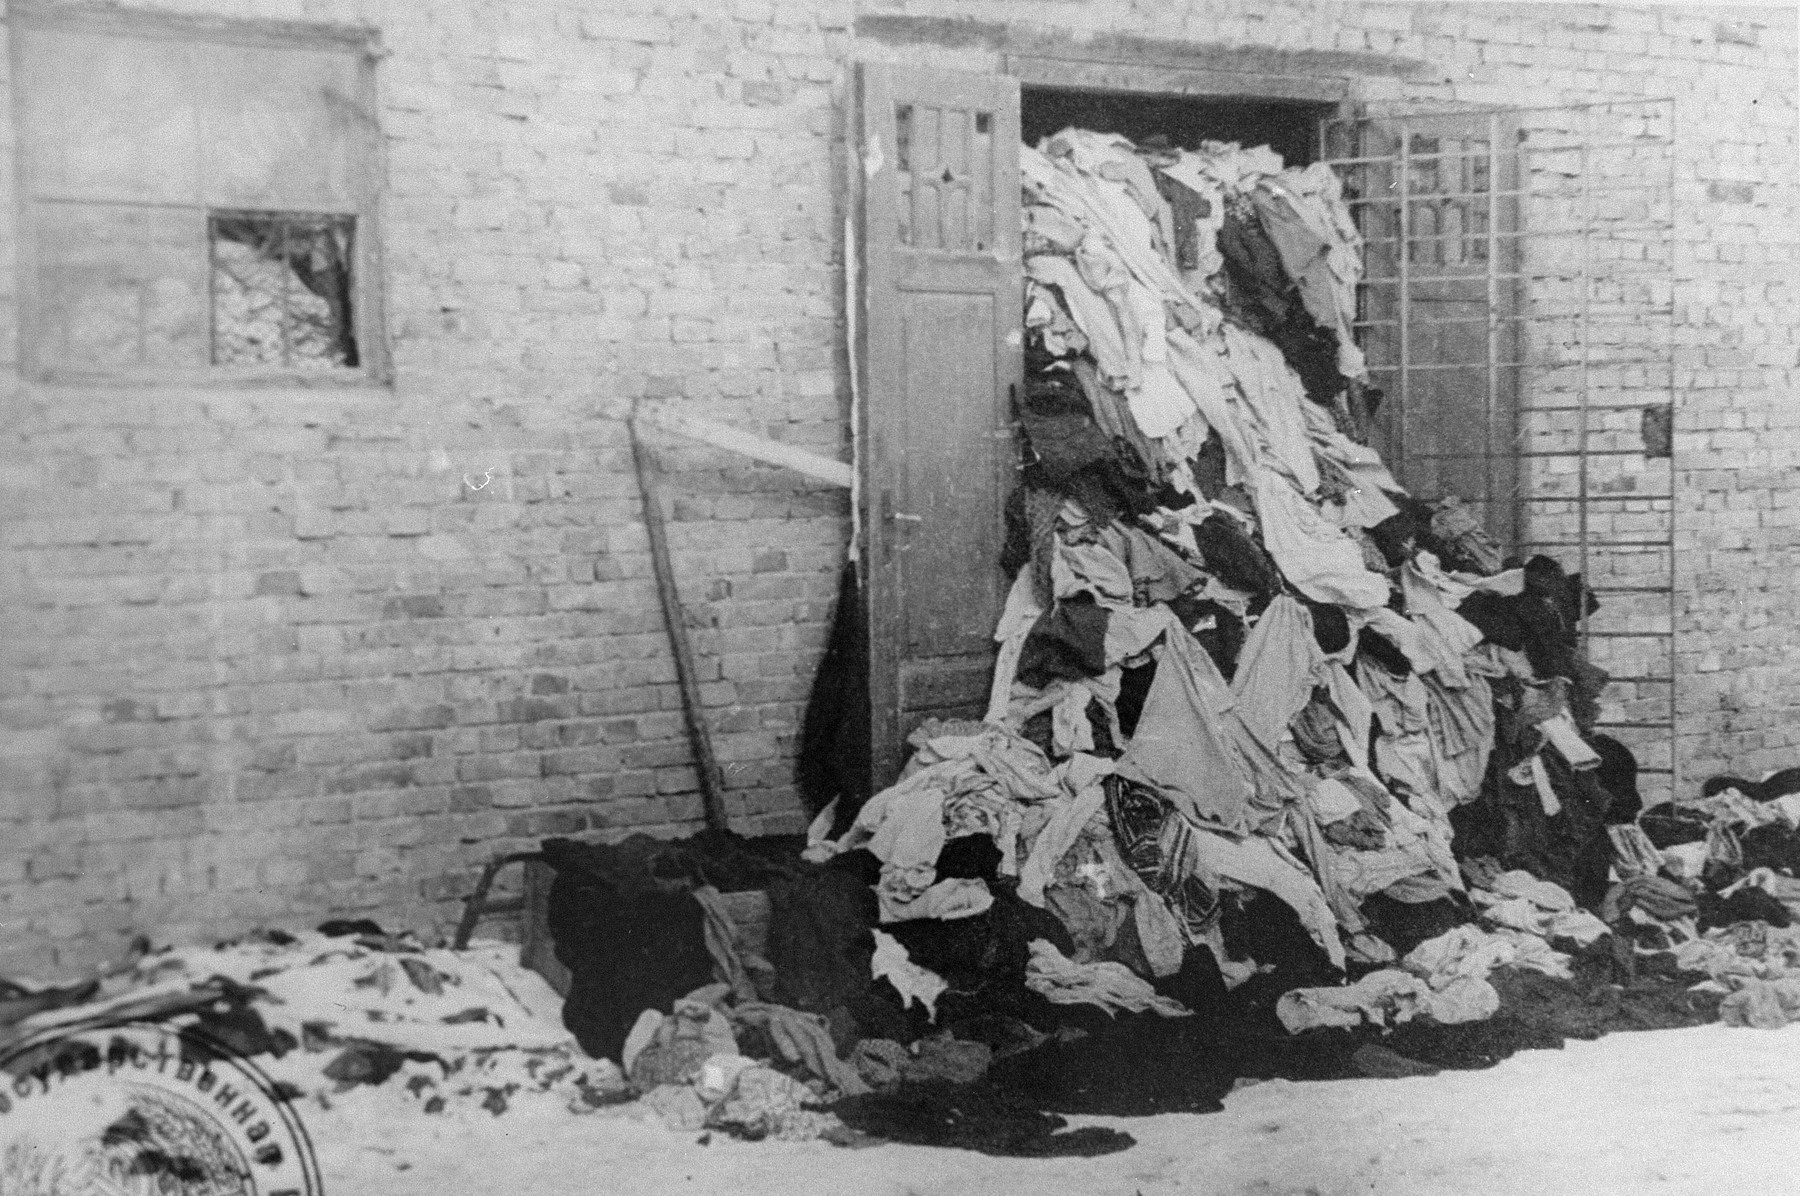 View of one of the warehouses in Auschwitz, which is overflowing with clothes confiscated from prisoners.